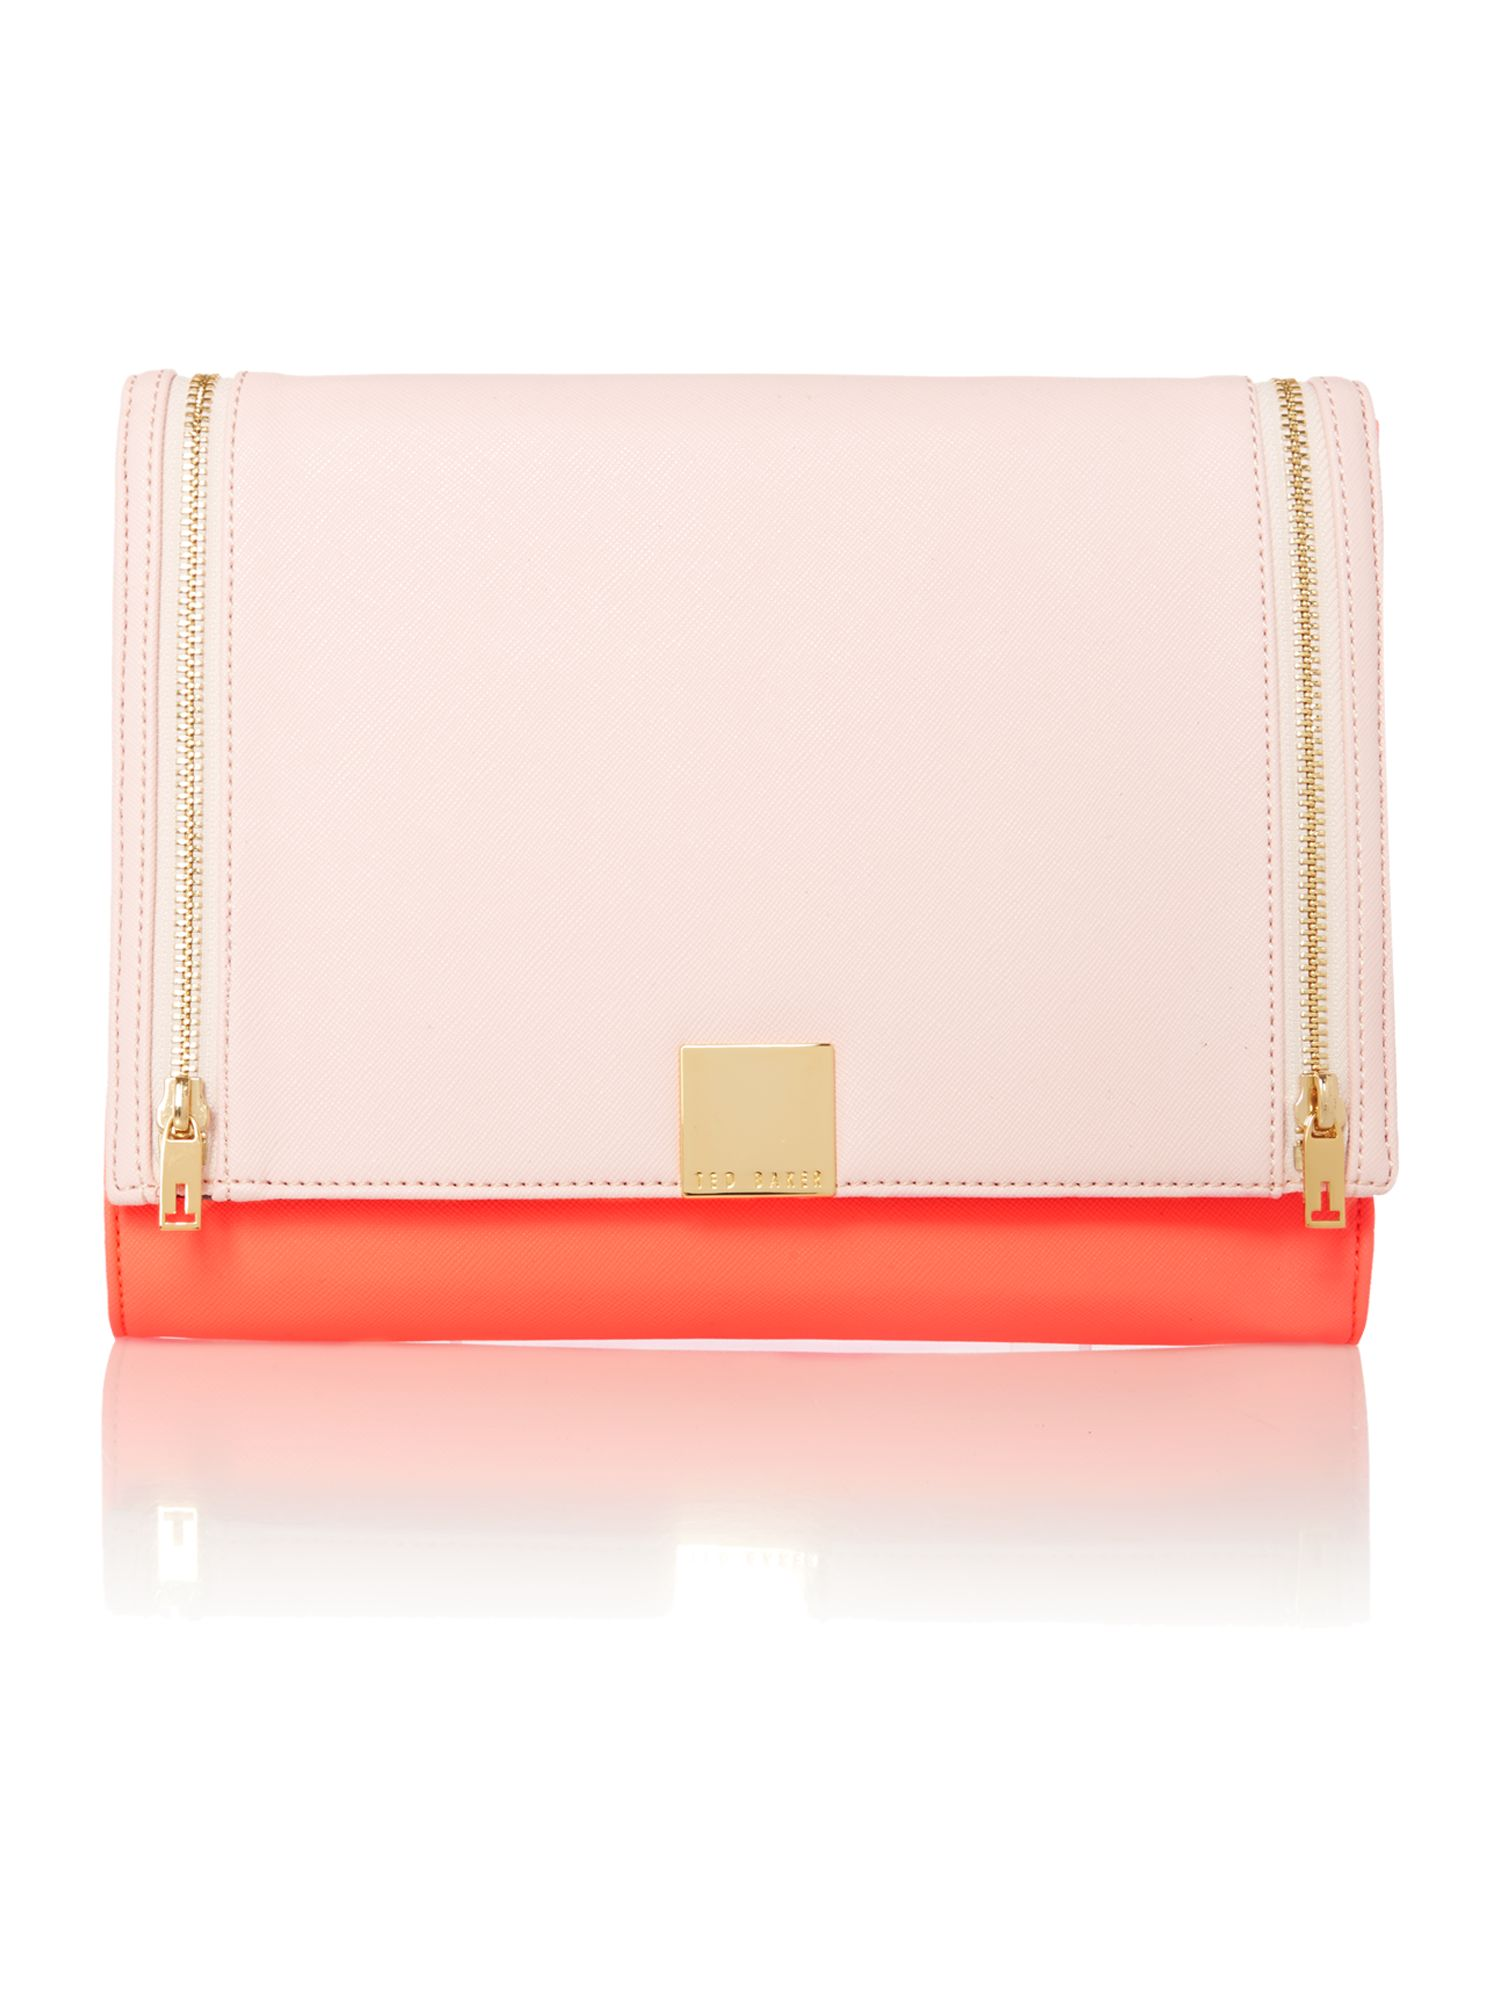 Medium pink and nude clutch bag